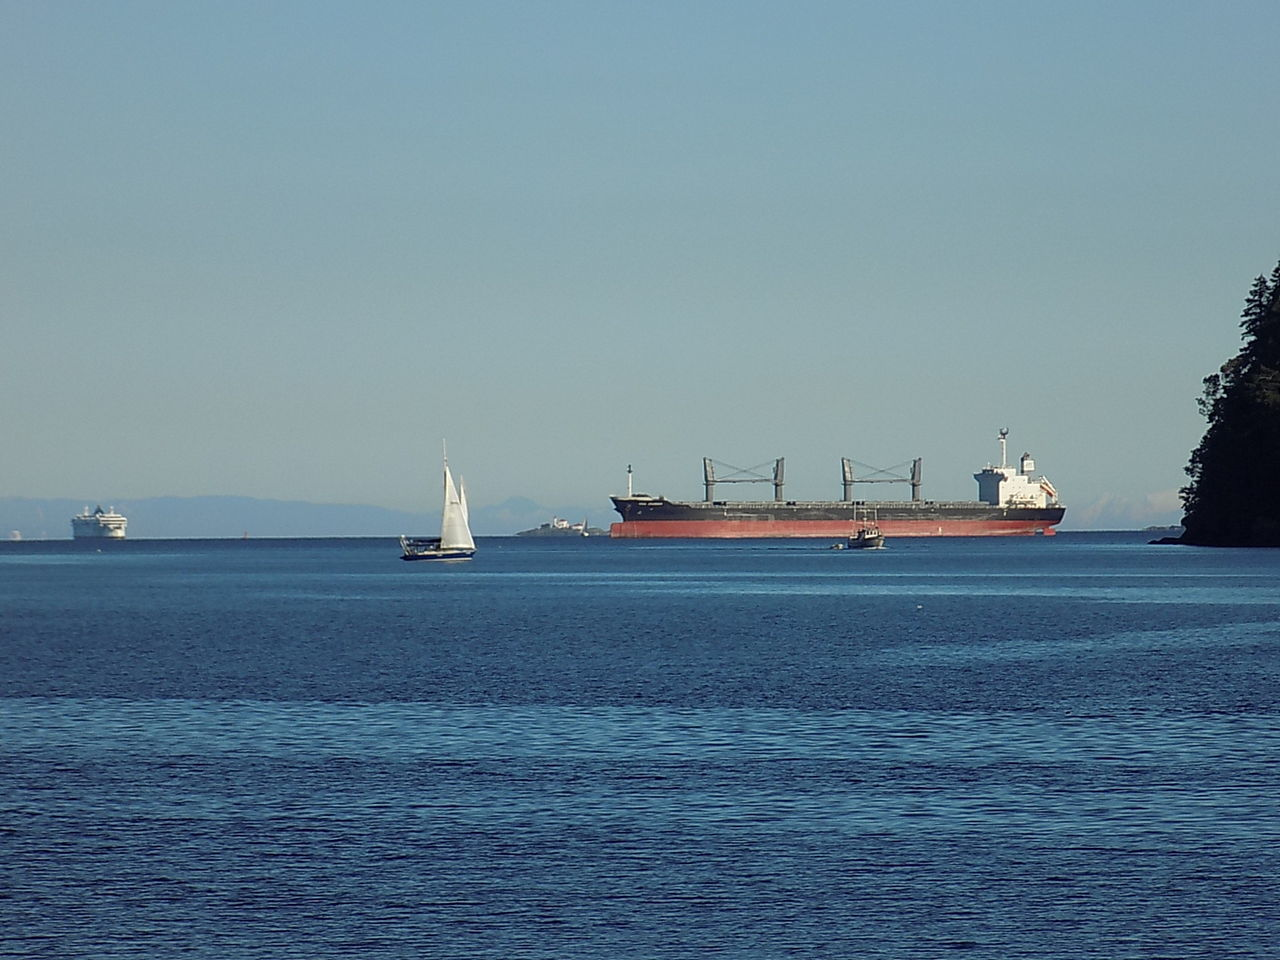 Ships passing. Nautical Vessel Business Finance And Industry Sea Transportation Industry Clear Sky Sky No People Water Outdoors Sailing Ship Outdoor Pictures EyeEmNewHere Canada 150 Vancouver Island Canada Nanaimo BC Cargo Ship